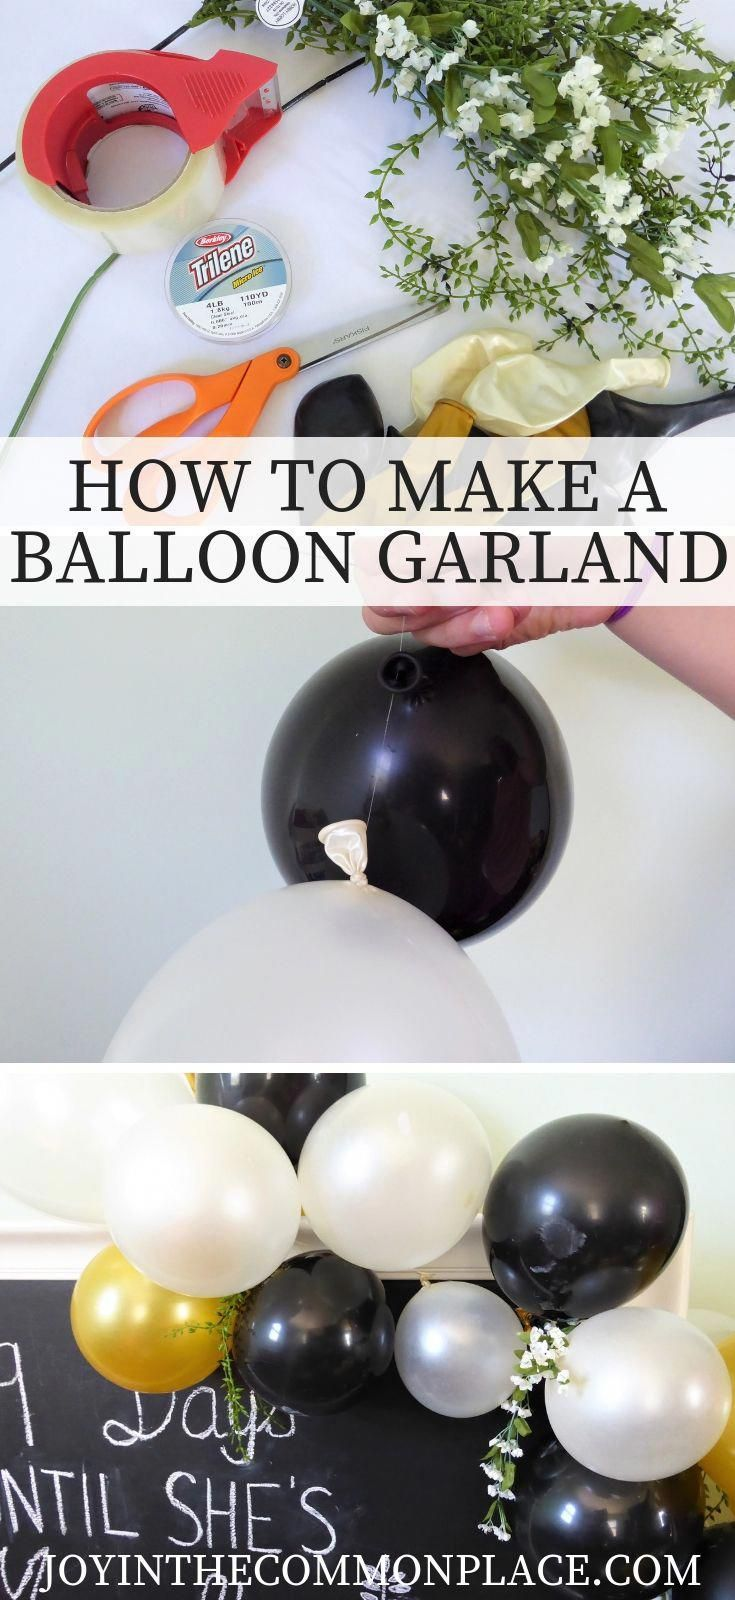 Are #you #looking #for #balloon #decorations #for #a #party? #Learn #how #to #make #your #own...